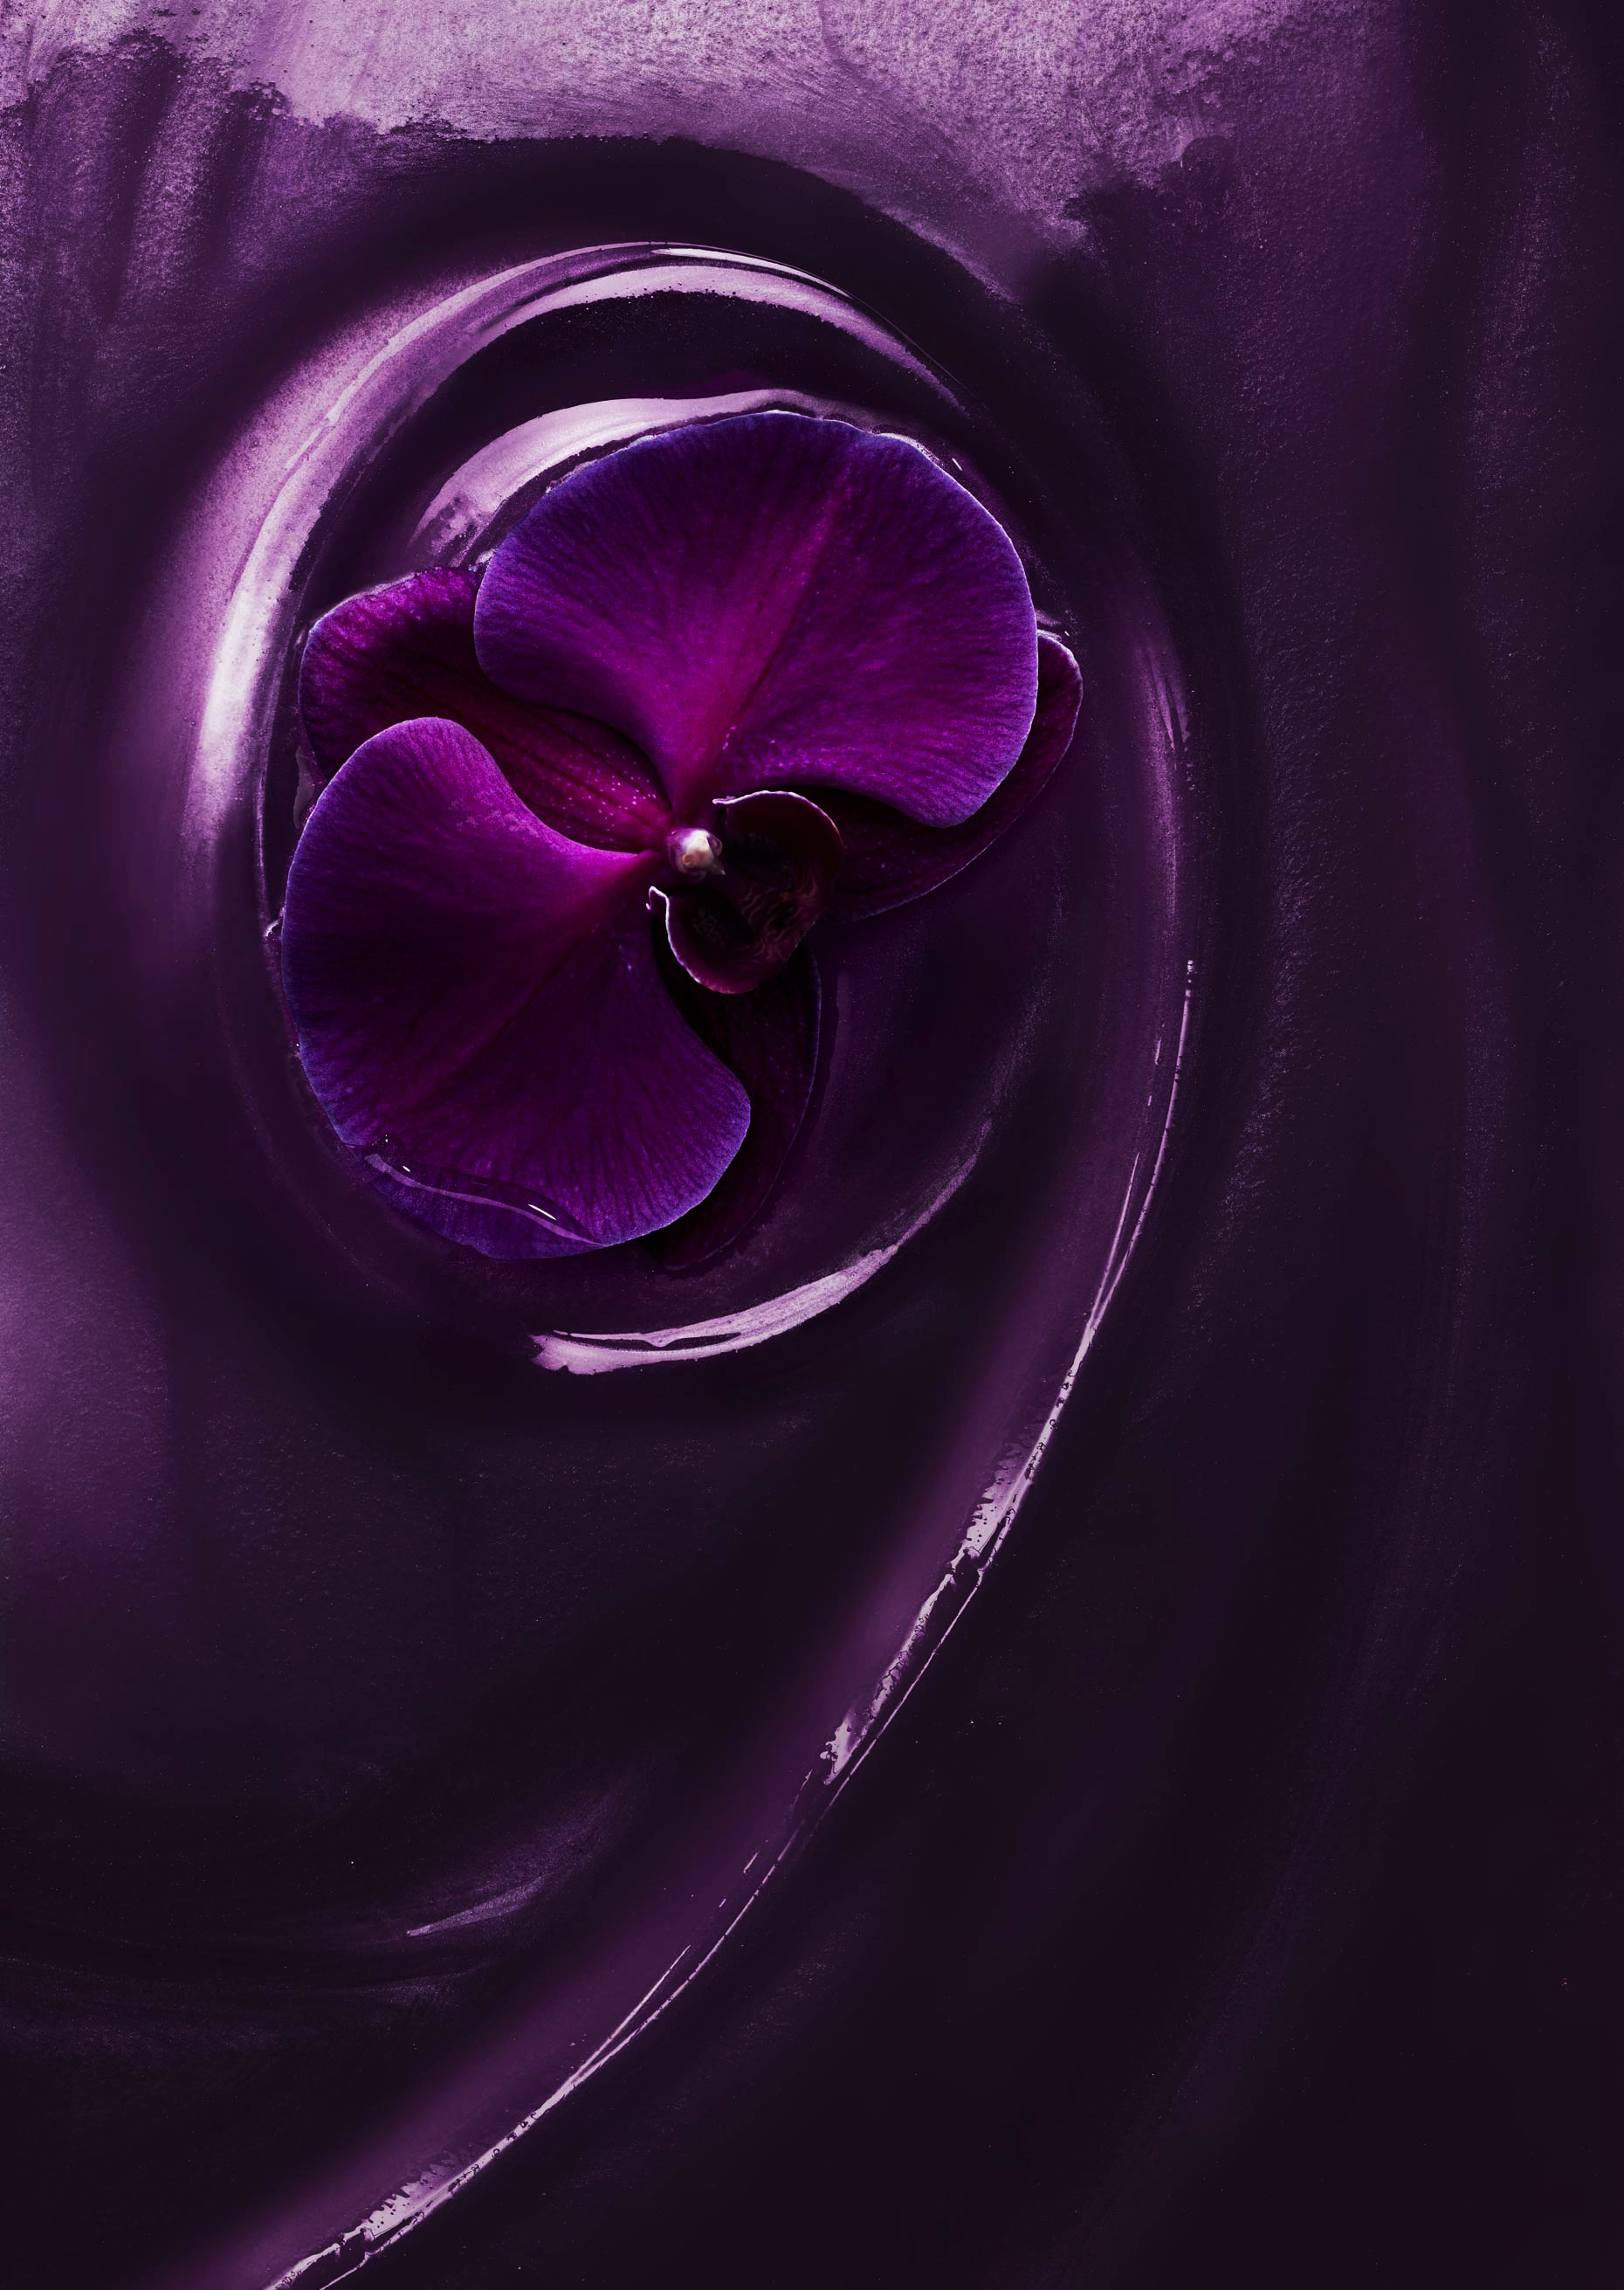 AdrianMueller_Liquids_Photographer_NYC_JKR_Caress_Relax_Orchid_FINAL